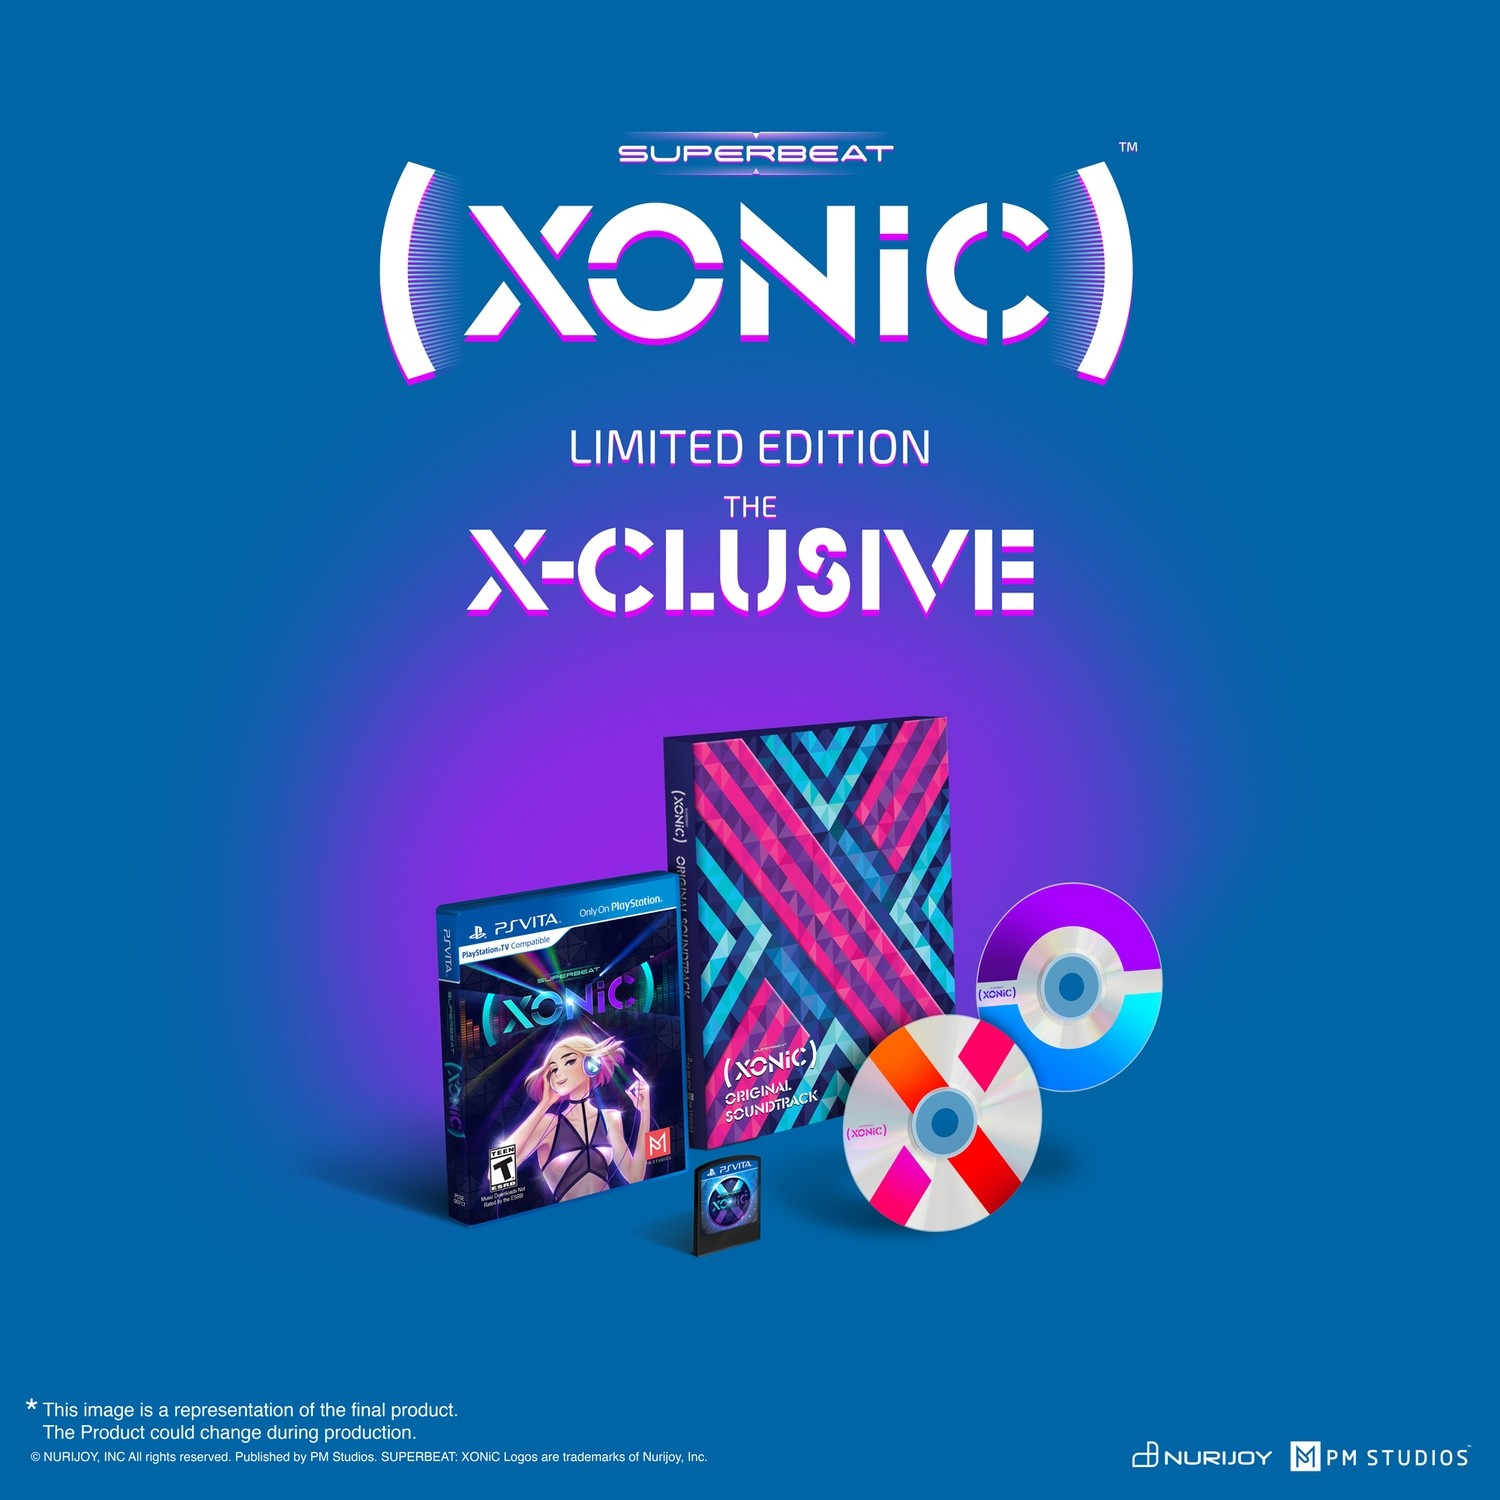 SUPERBEAT: XONiC The X-CLUSIVE Limited Edition